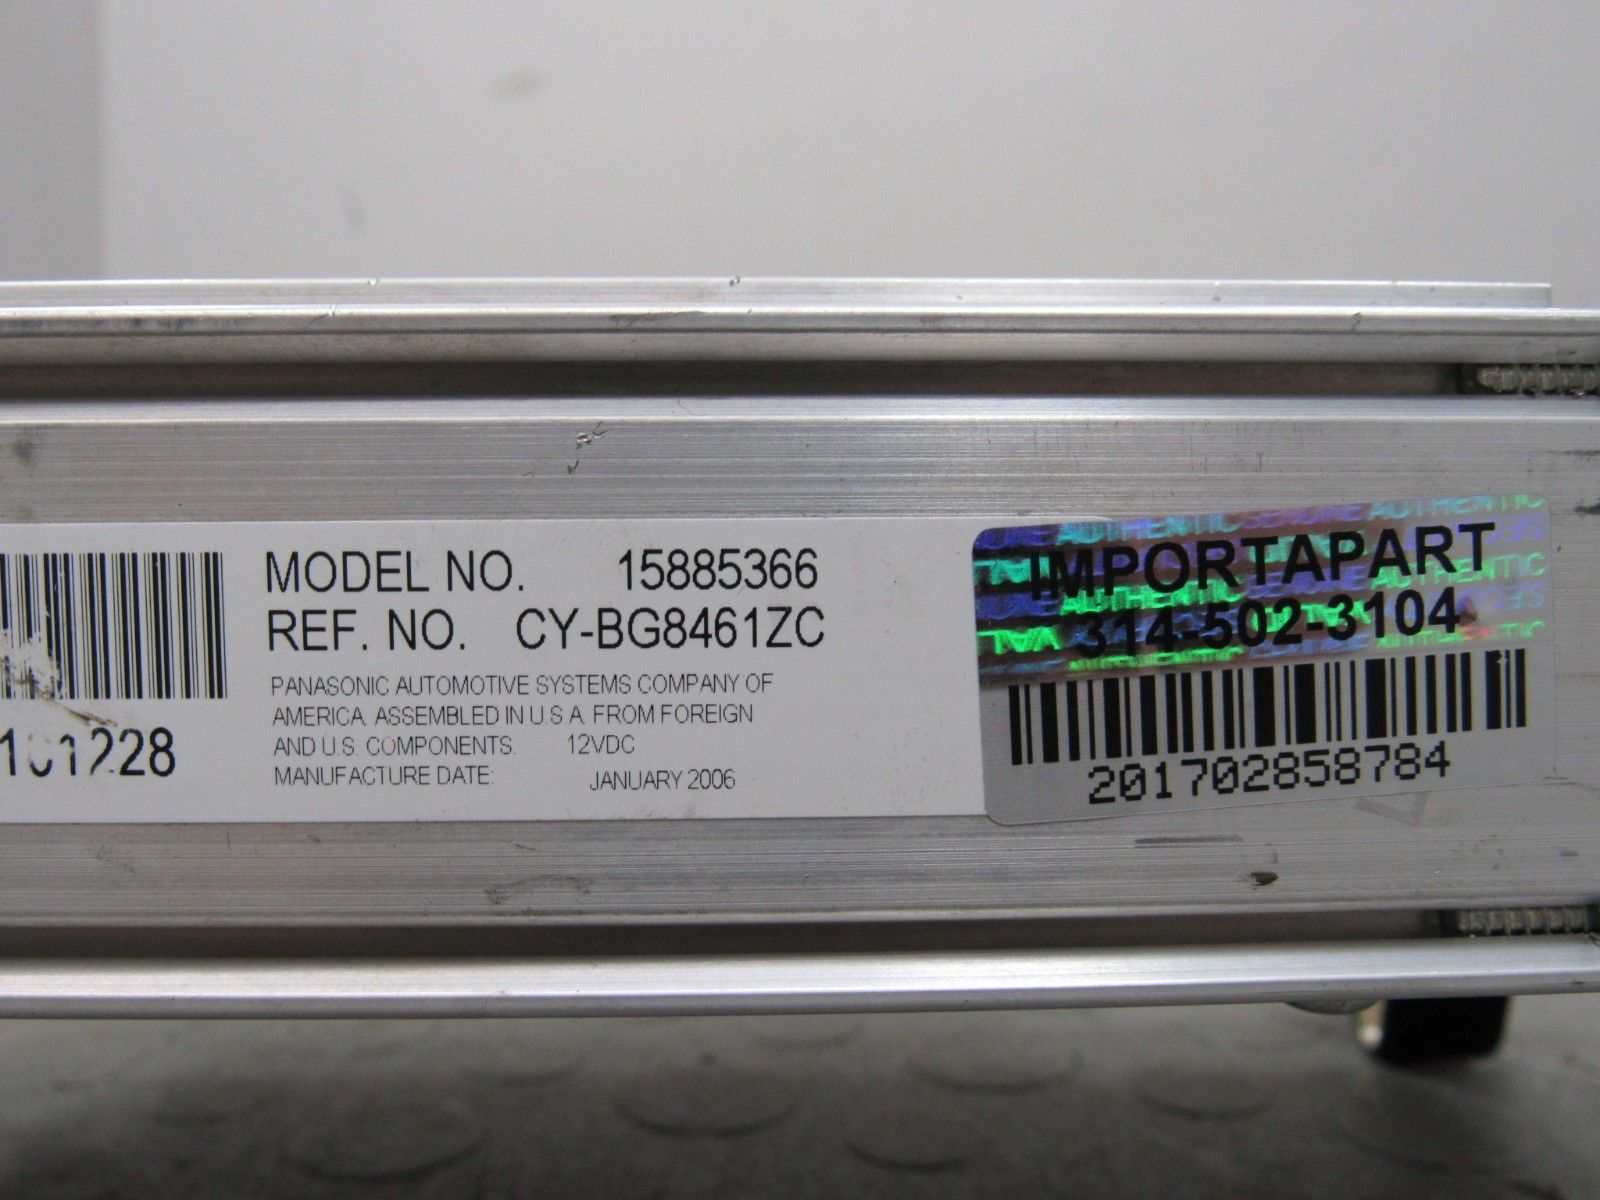 06 07 Chevy Monte Carlo Panasonic Amp Amplifier Audio Stereo Booster 15885366 Bd